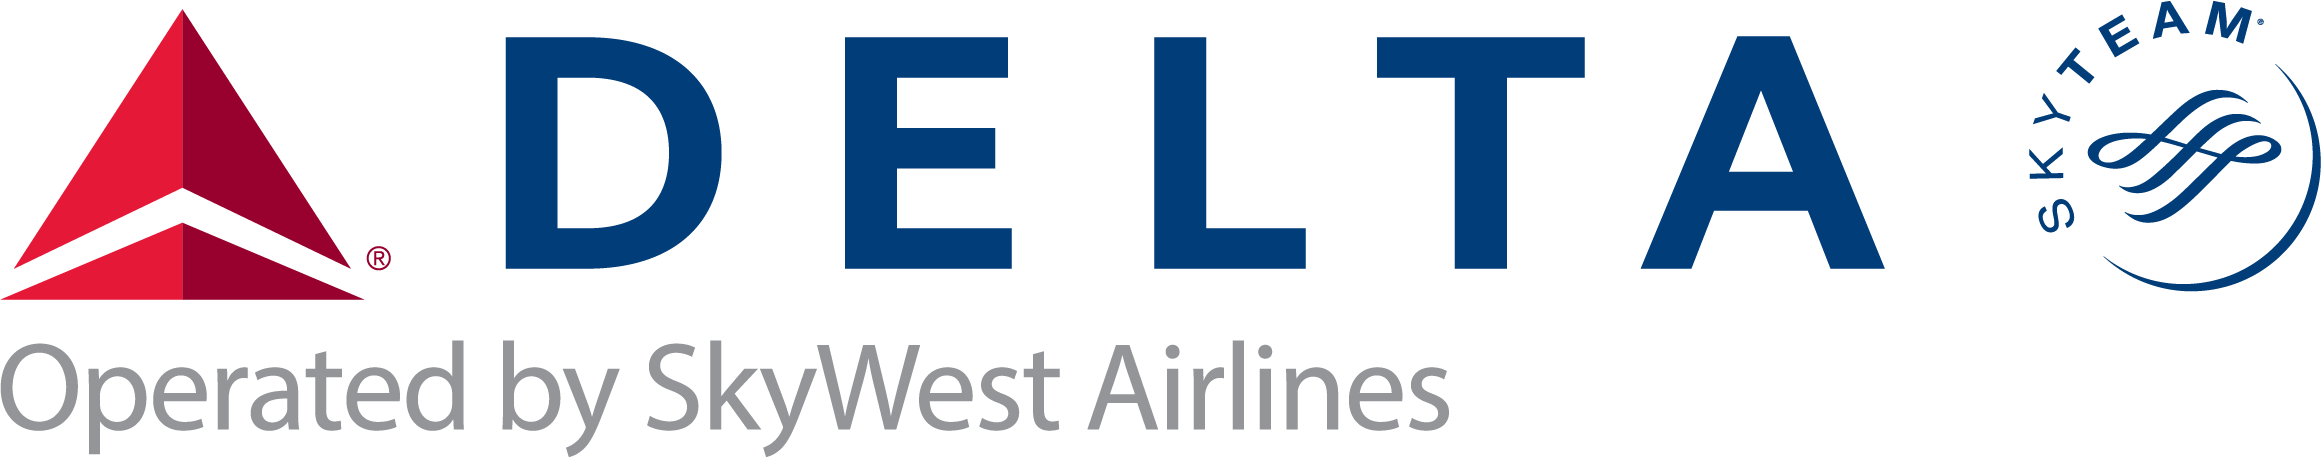 Delta Connection operated by SkyWest Airlines